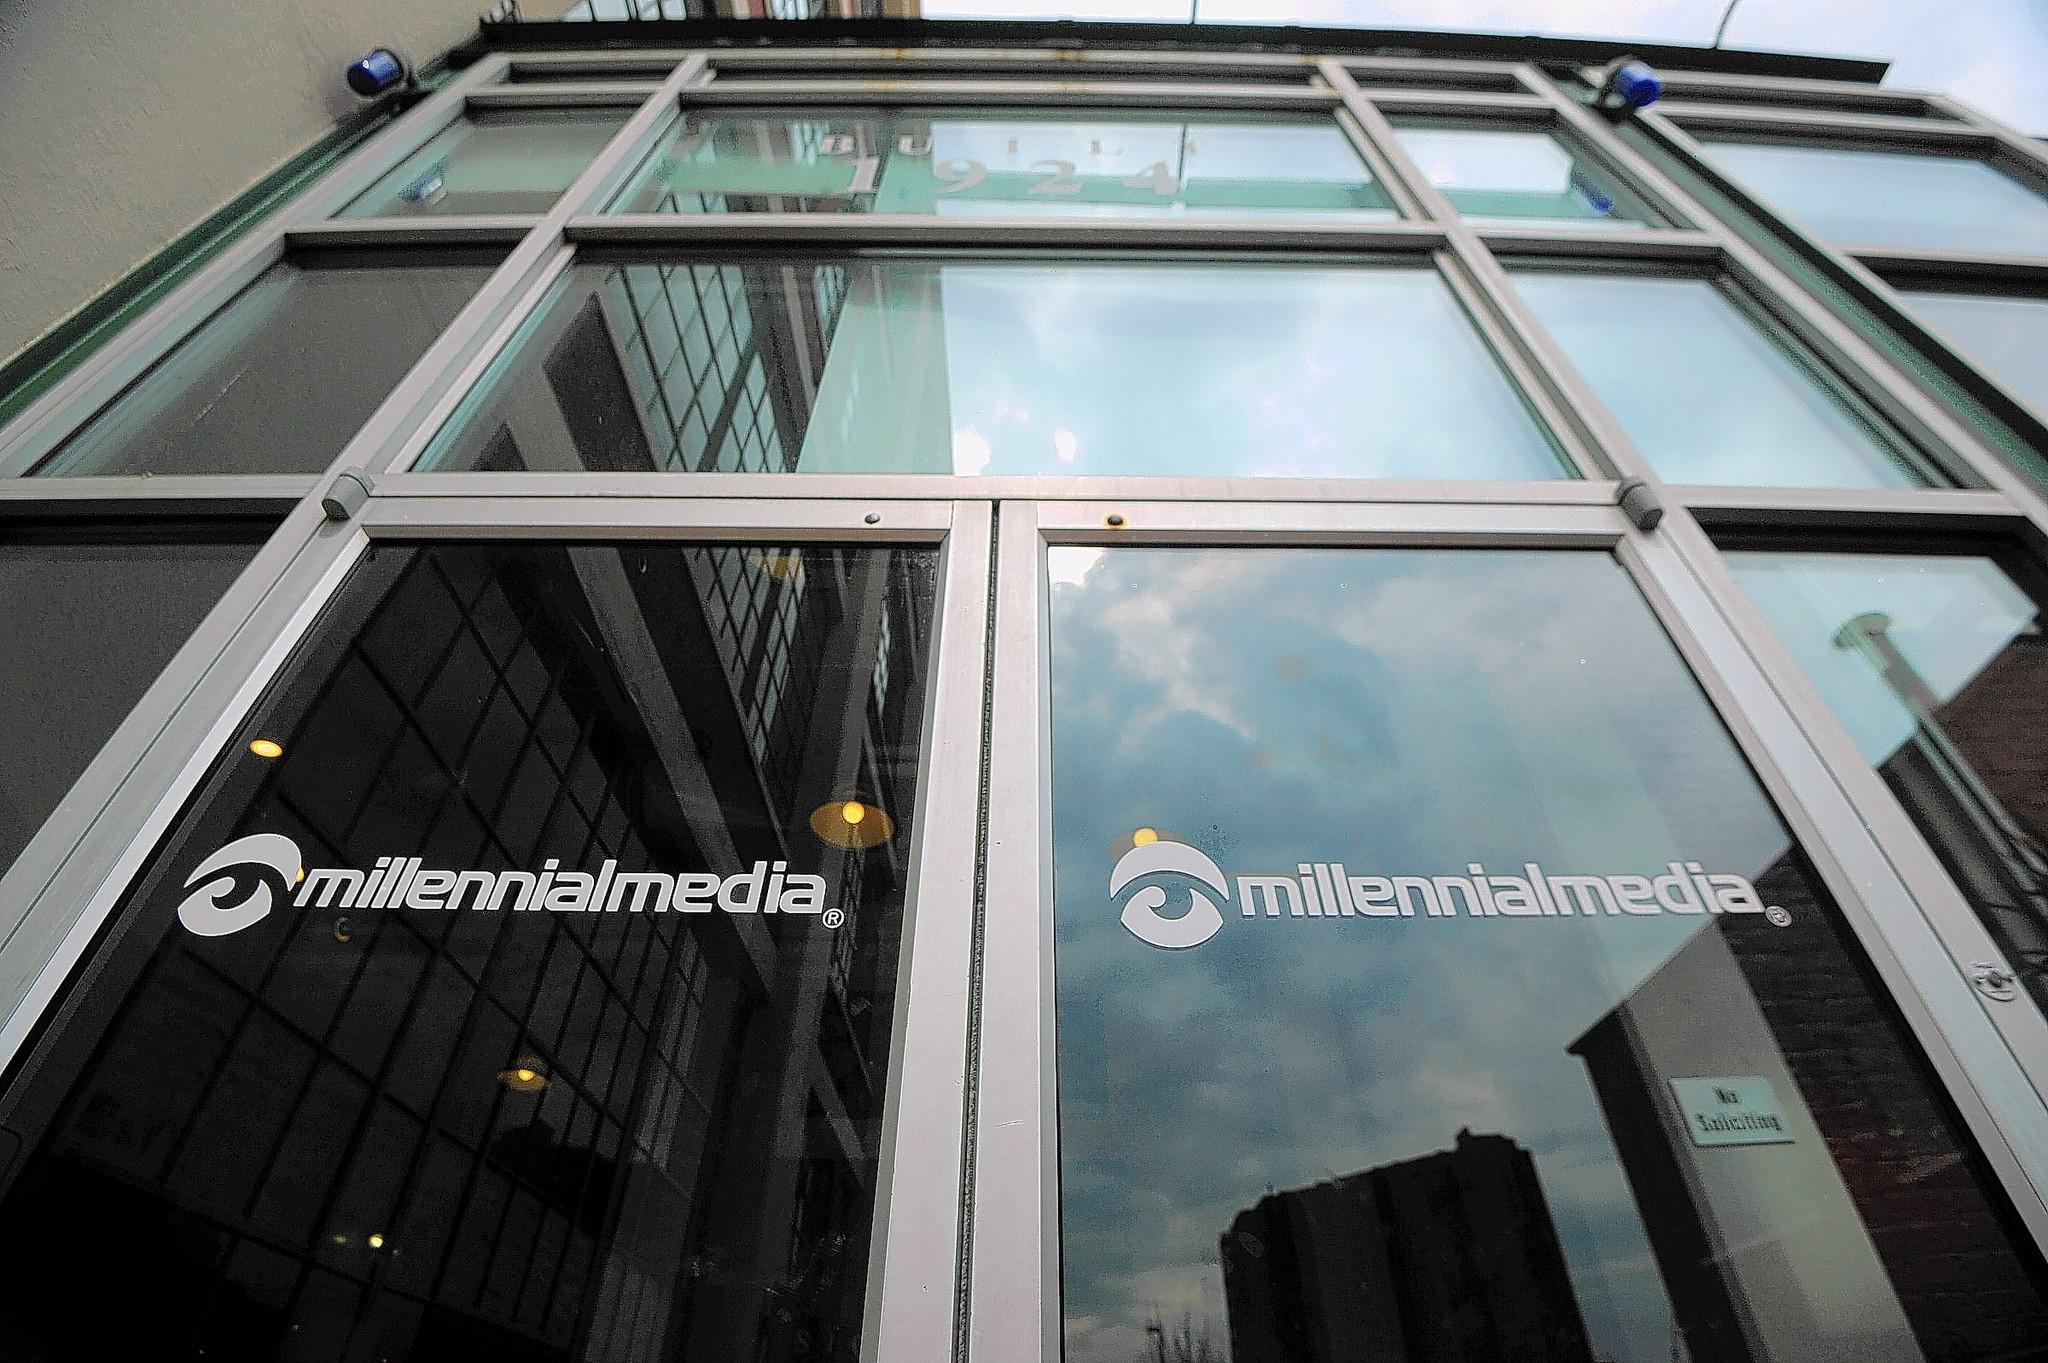 Millennial Media is taking over the Can Company on Boston Street as it expands its headquarters.